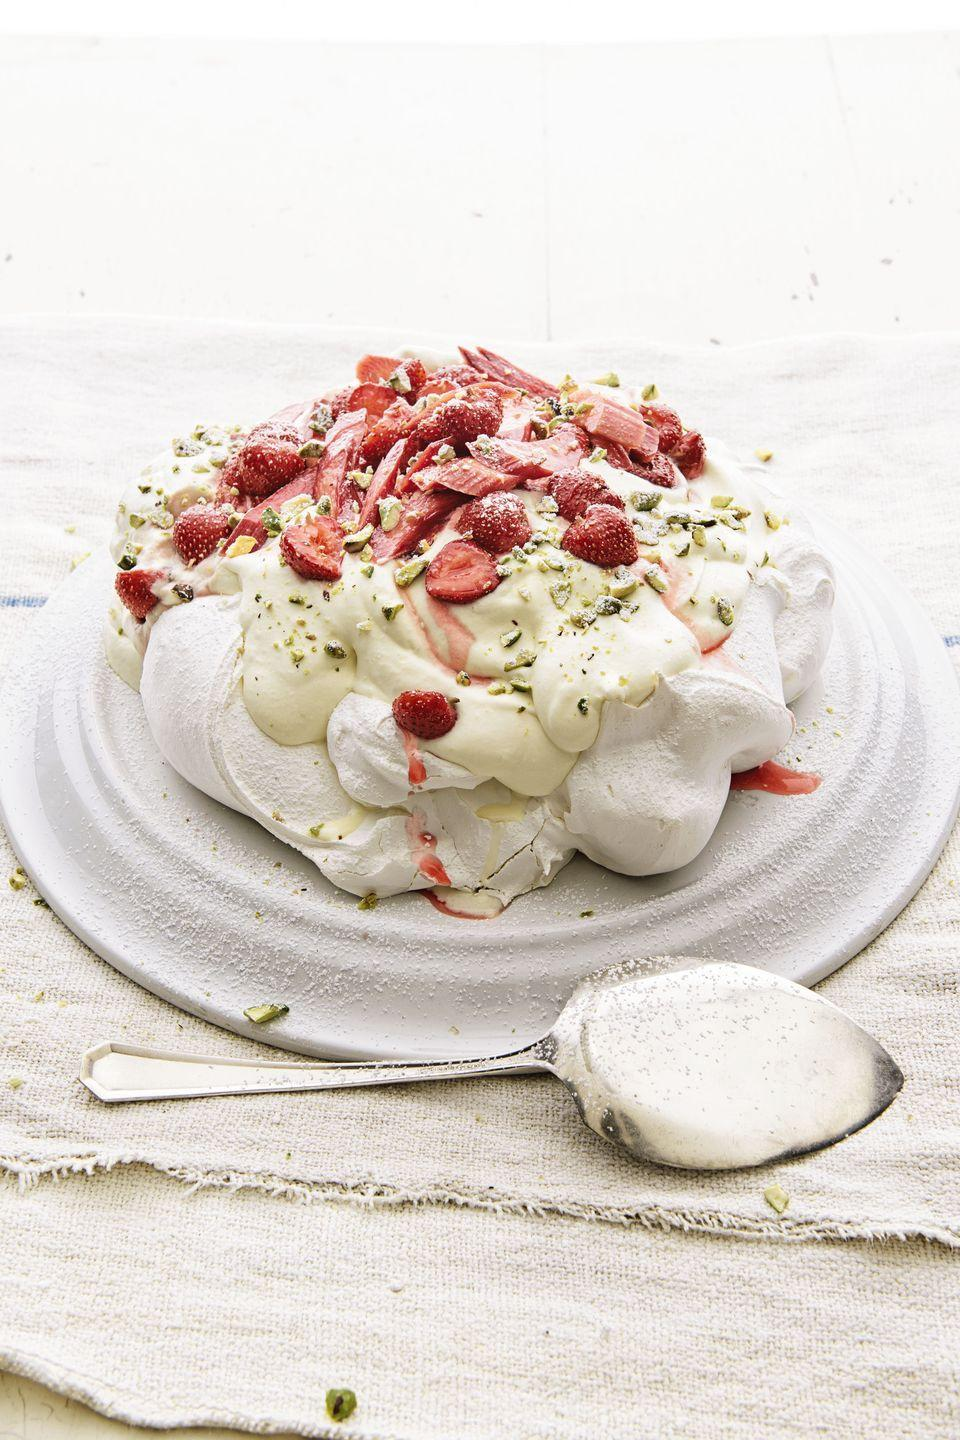 "<p>Sometimes, you have to show off your skills. Like today. Because ... Mom.</p><p><em><a href=""https://www.goodhousekeeping.com/food-recipes/a1522/pavlova-strawberries-rhubarb-recipe-ghk0415/"" rel=""nofollow noopener"" target=""_blank"" data-ylk=""slk:Get the recipe for Pavlova with Strawberries and Rhubarb »"" class=""link rapid-noclick-resp"">Get the recipe for Pavlova with Strawberries and Rhubarb »</a></em></p>"